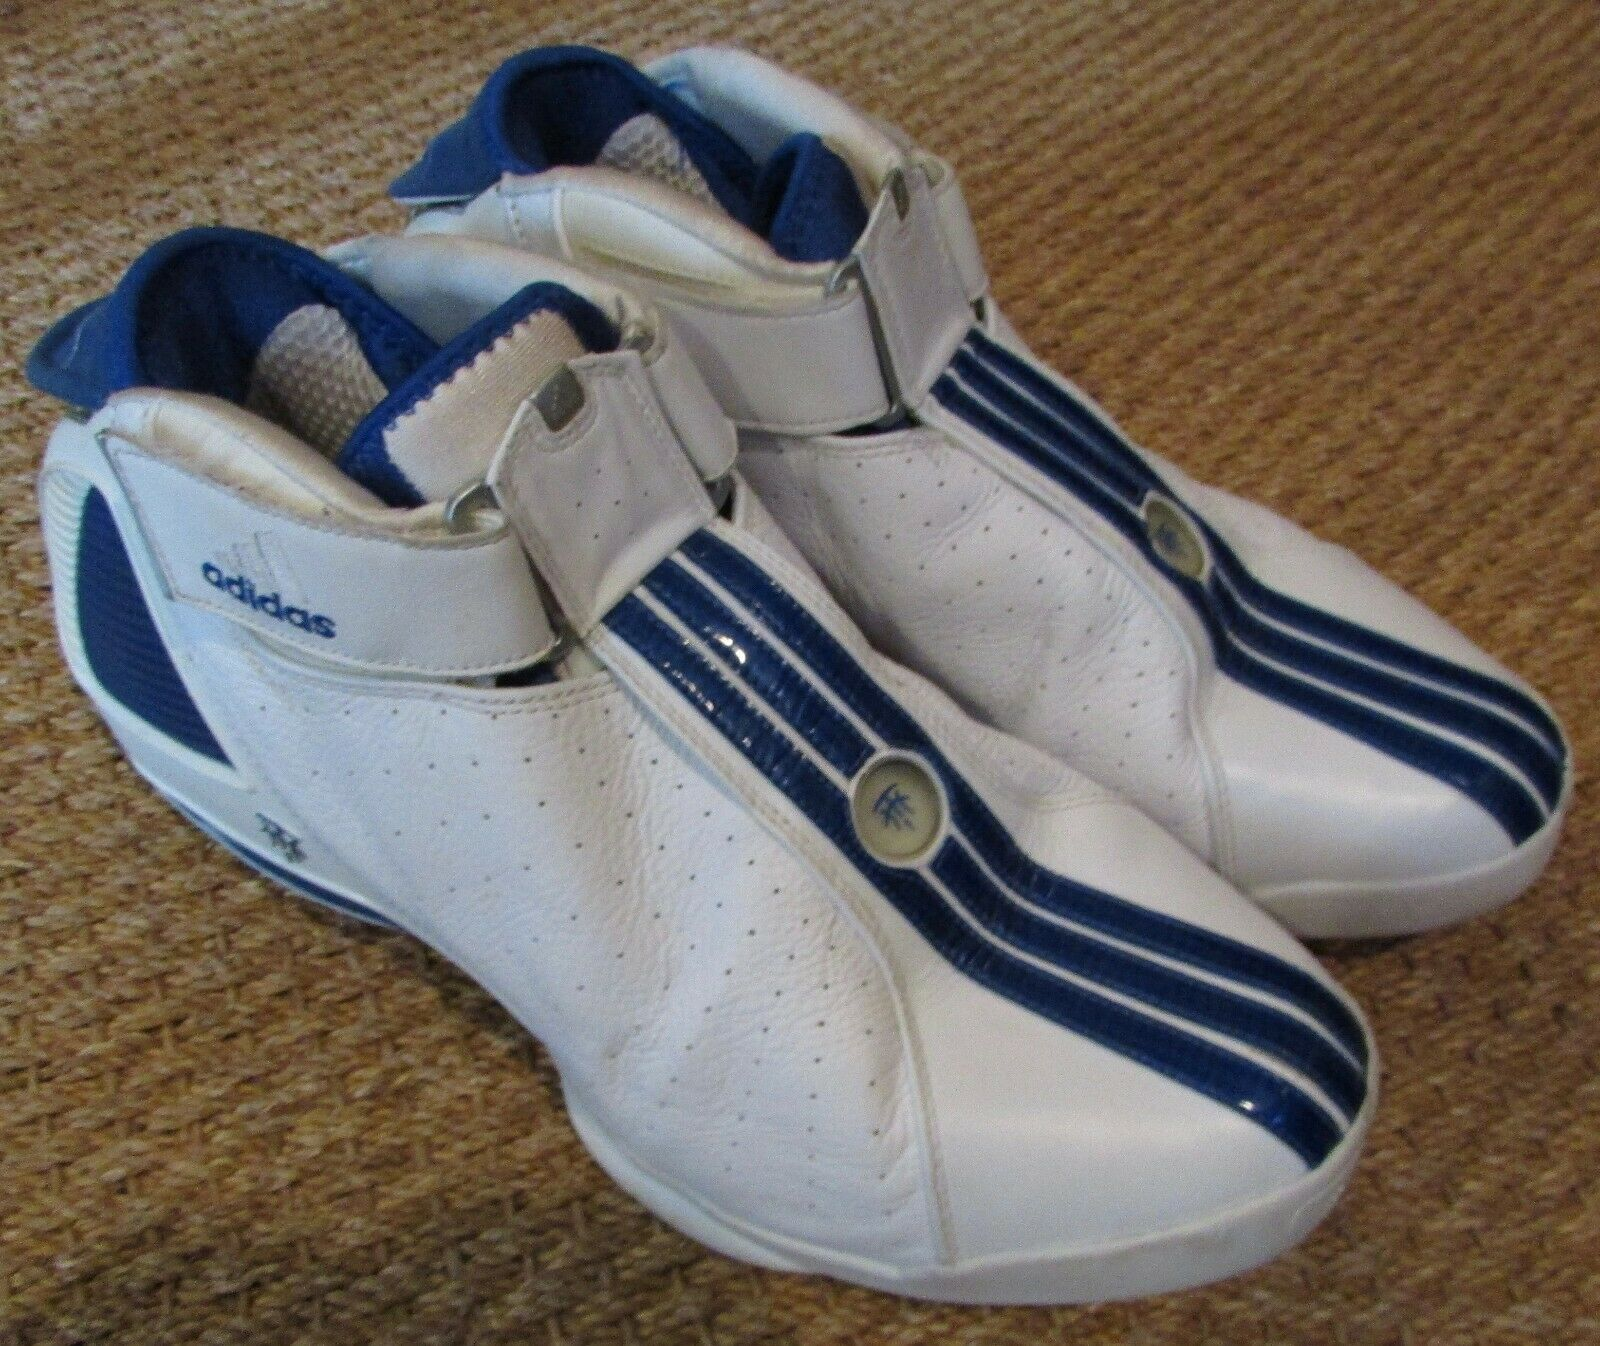 Adidas T-Mac 4.5 caballero zapatillas de baloncesto-Talla 14 tracy mcgrady 2004